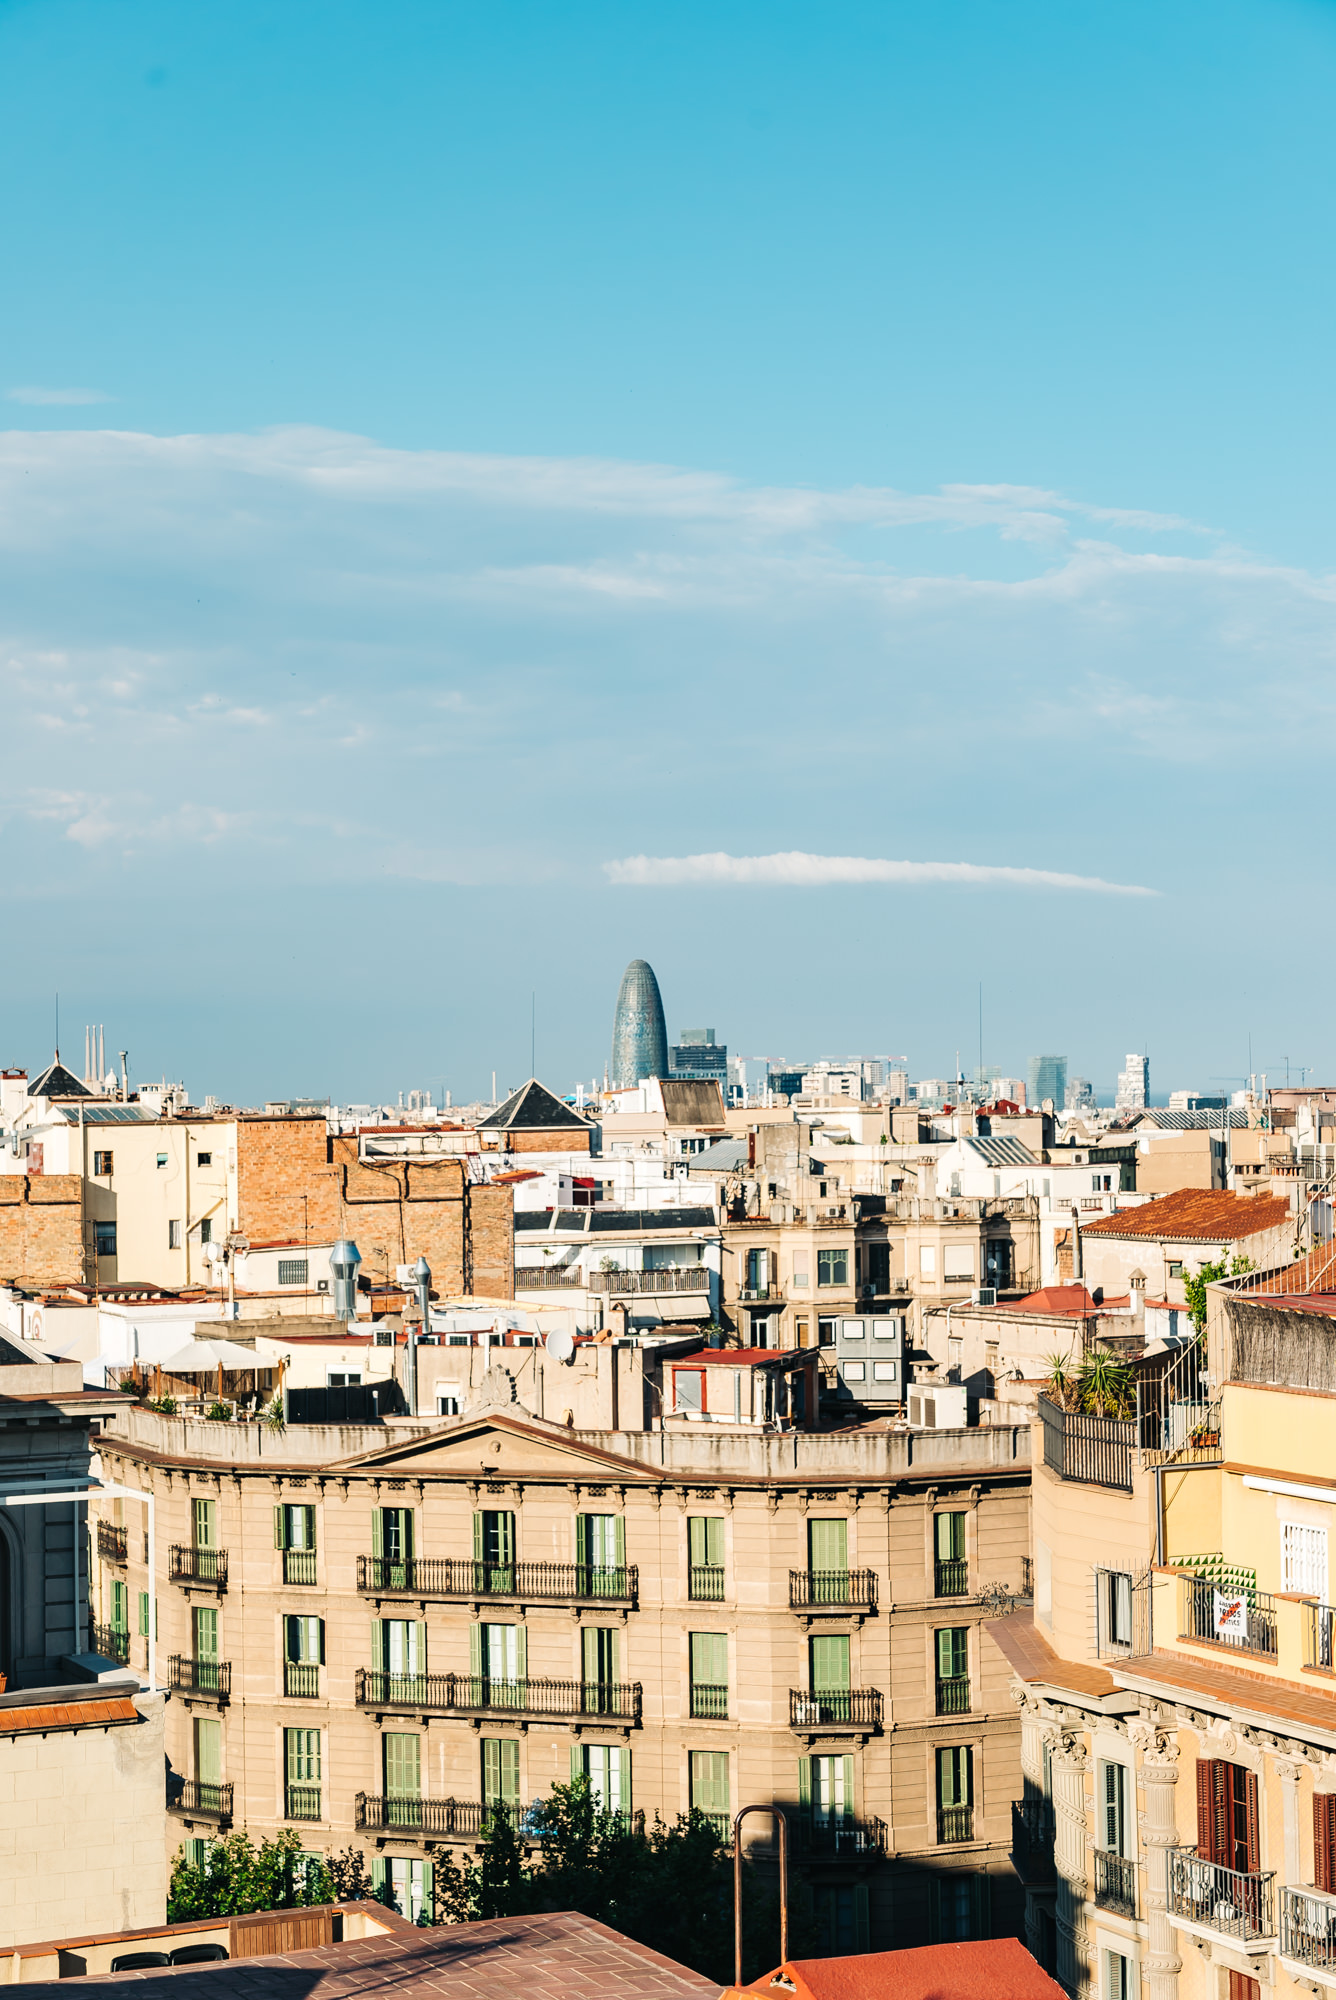 Overlooking Barcelona from the rooftop of Casa Mila